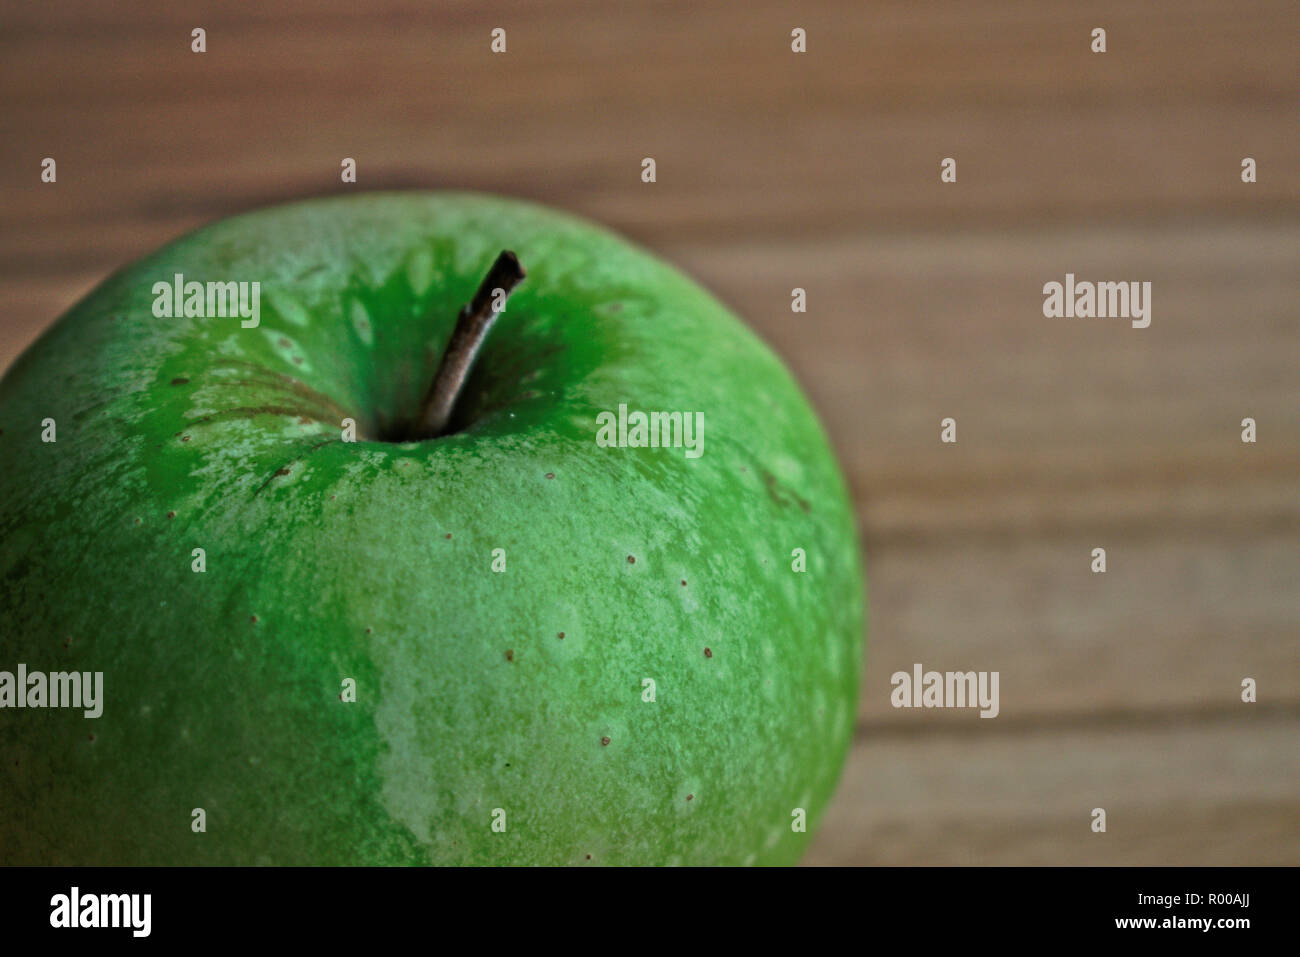 Closeup of an apple on a wooden table - Stock Image